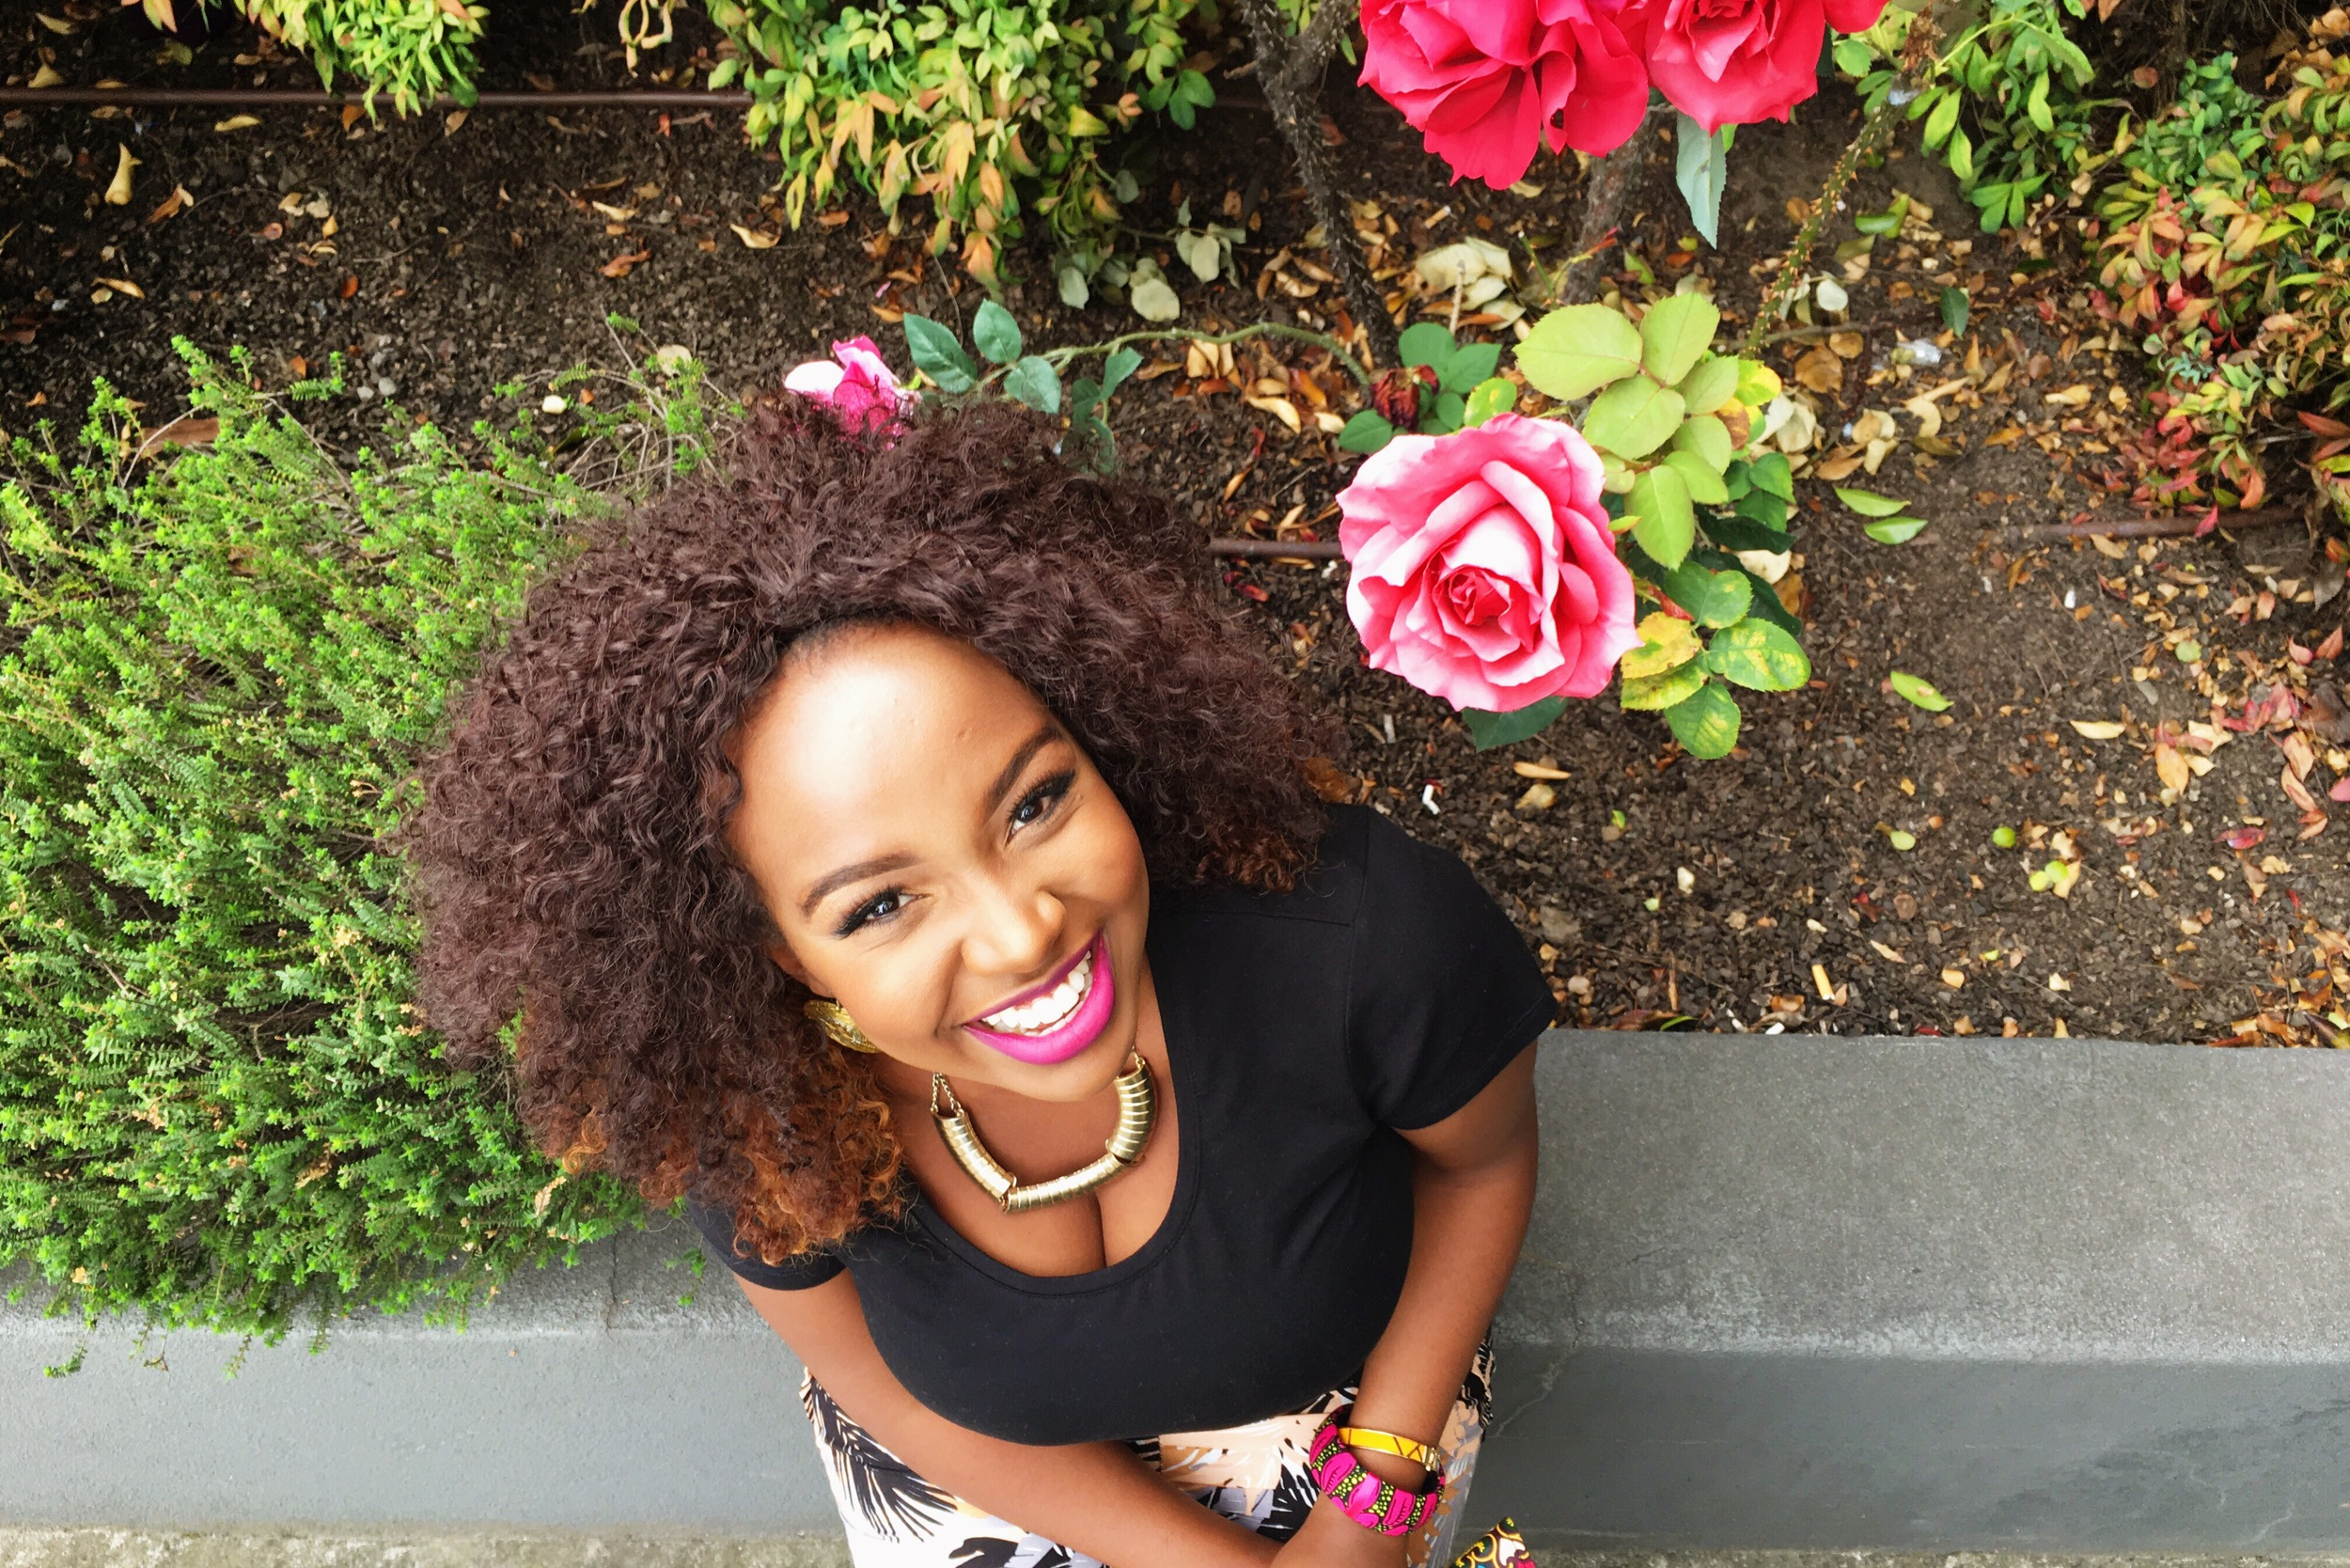 Finding Answers To Life's Biggest Questions: Falling In Love & Building A Career